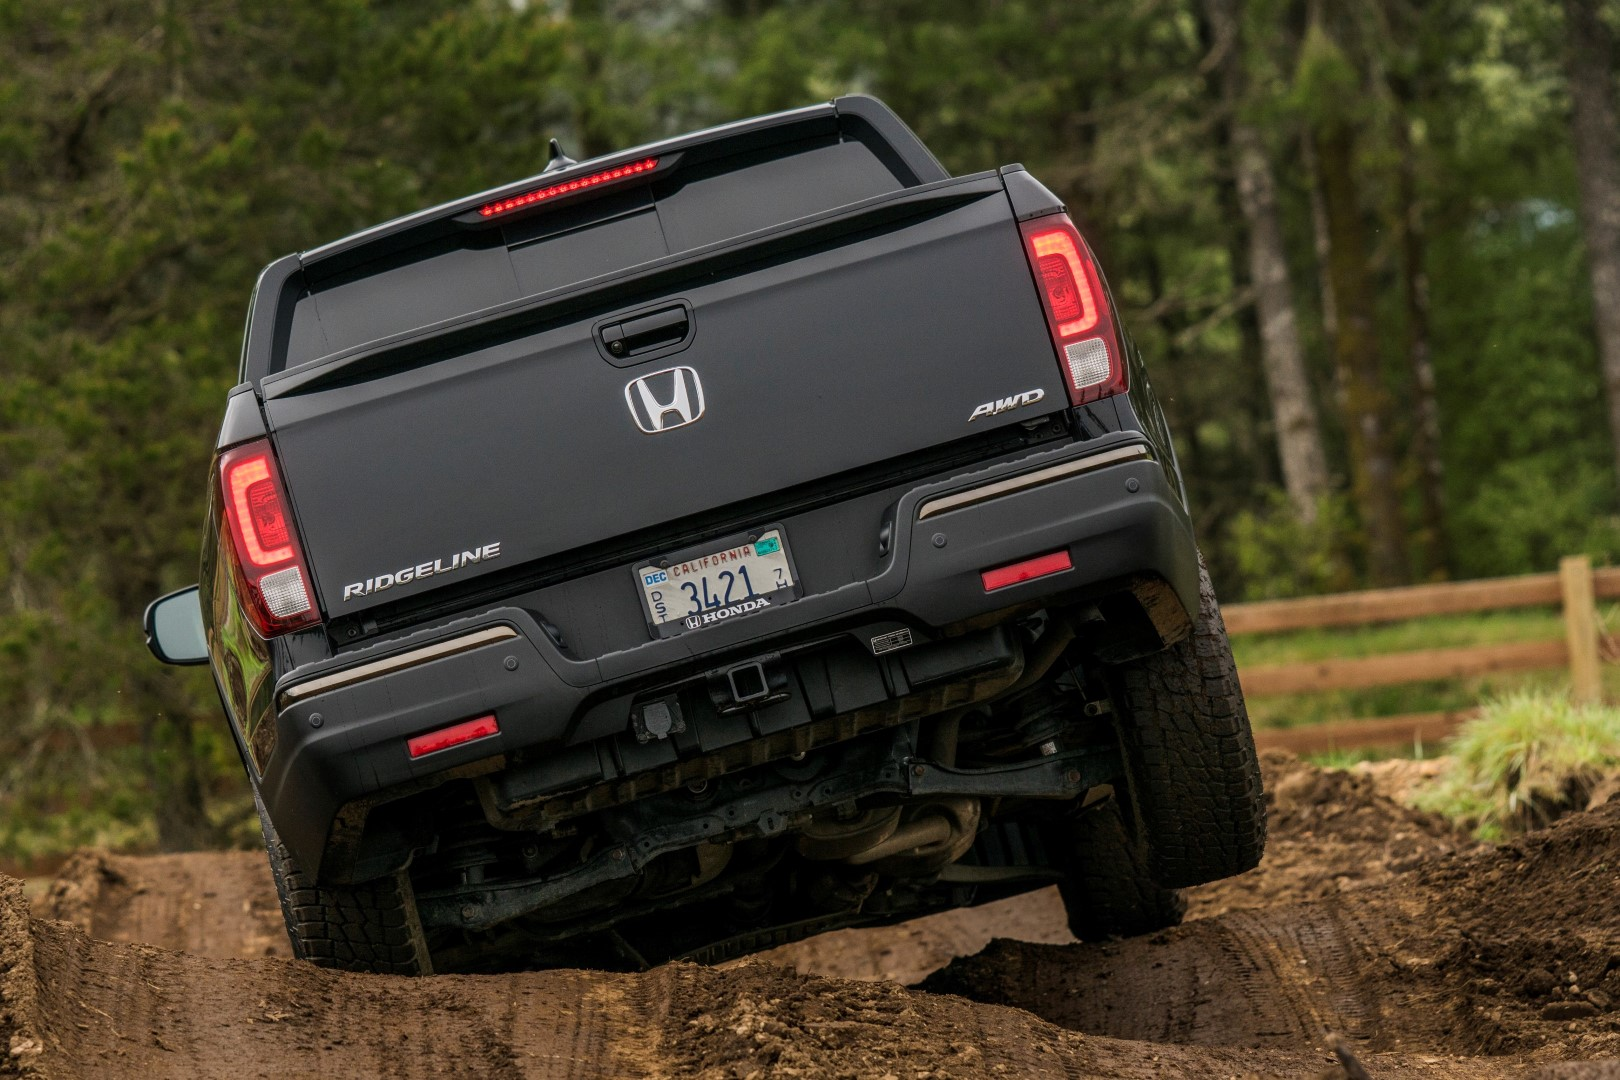 2017 Ridgeline Off Road >> My Top 7 Picks from Mudfest 2017 - CRANKSHAFT CULTURE